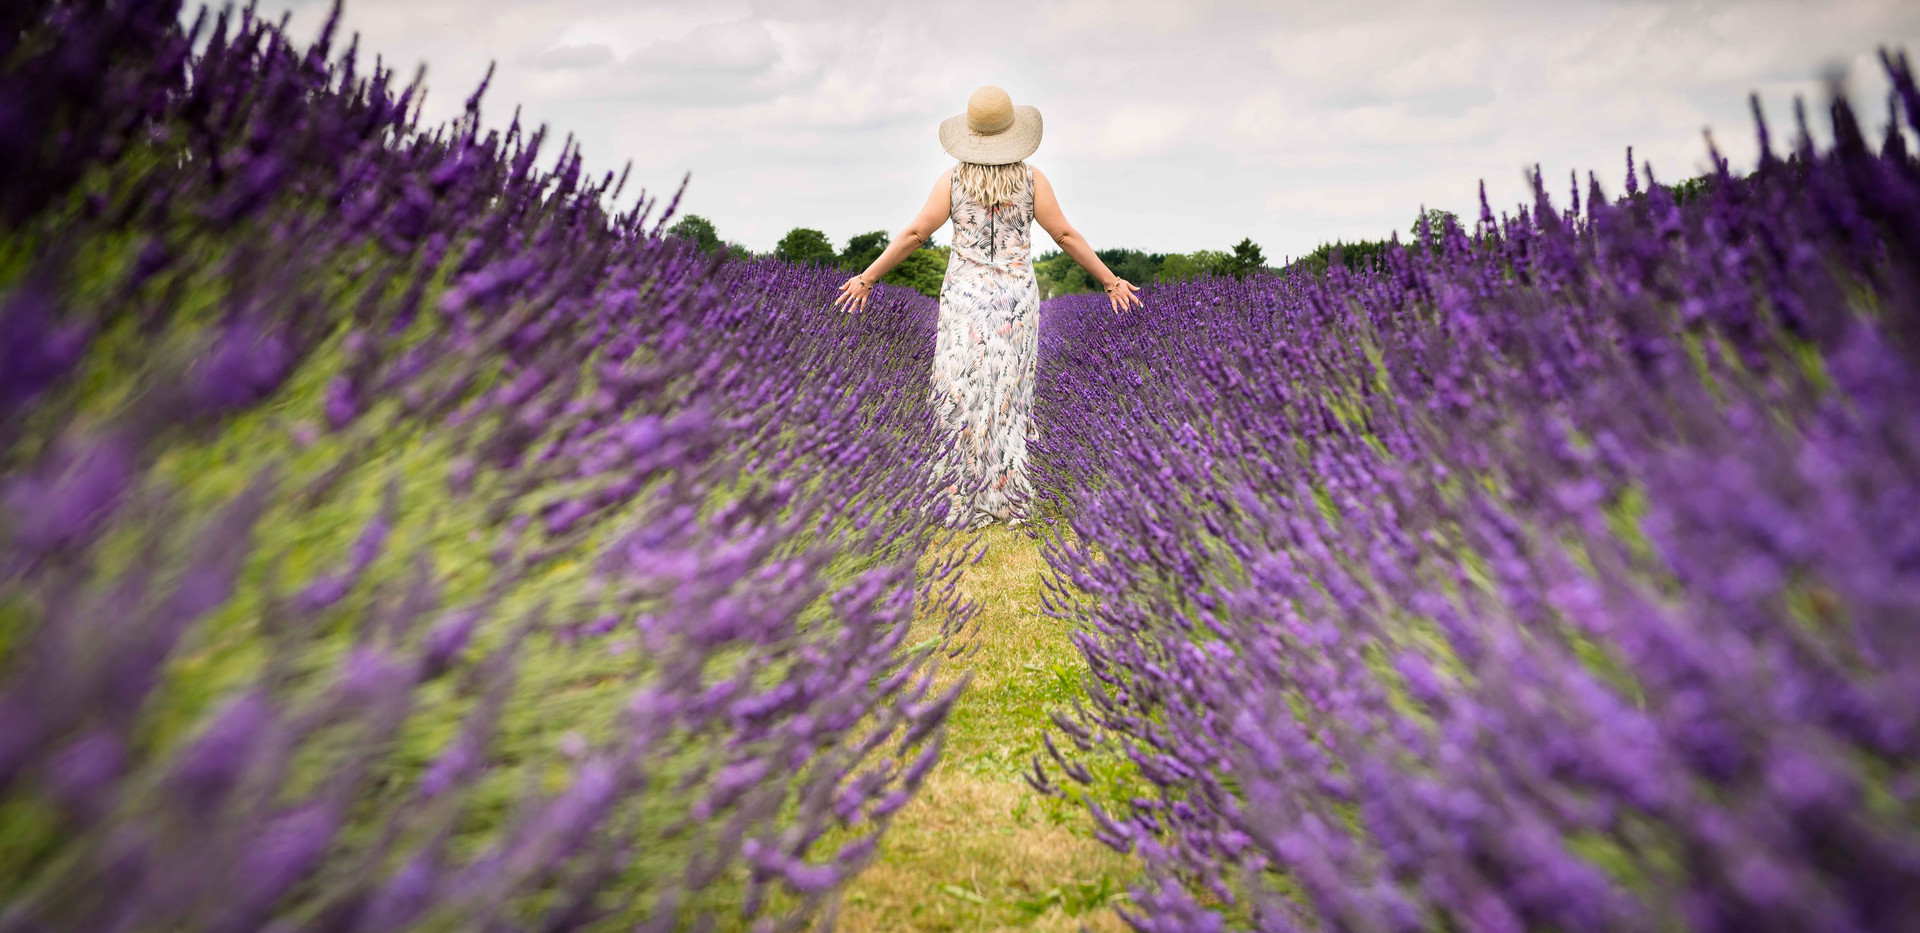 Walking Through The Lavender